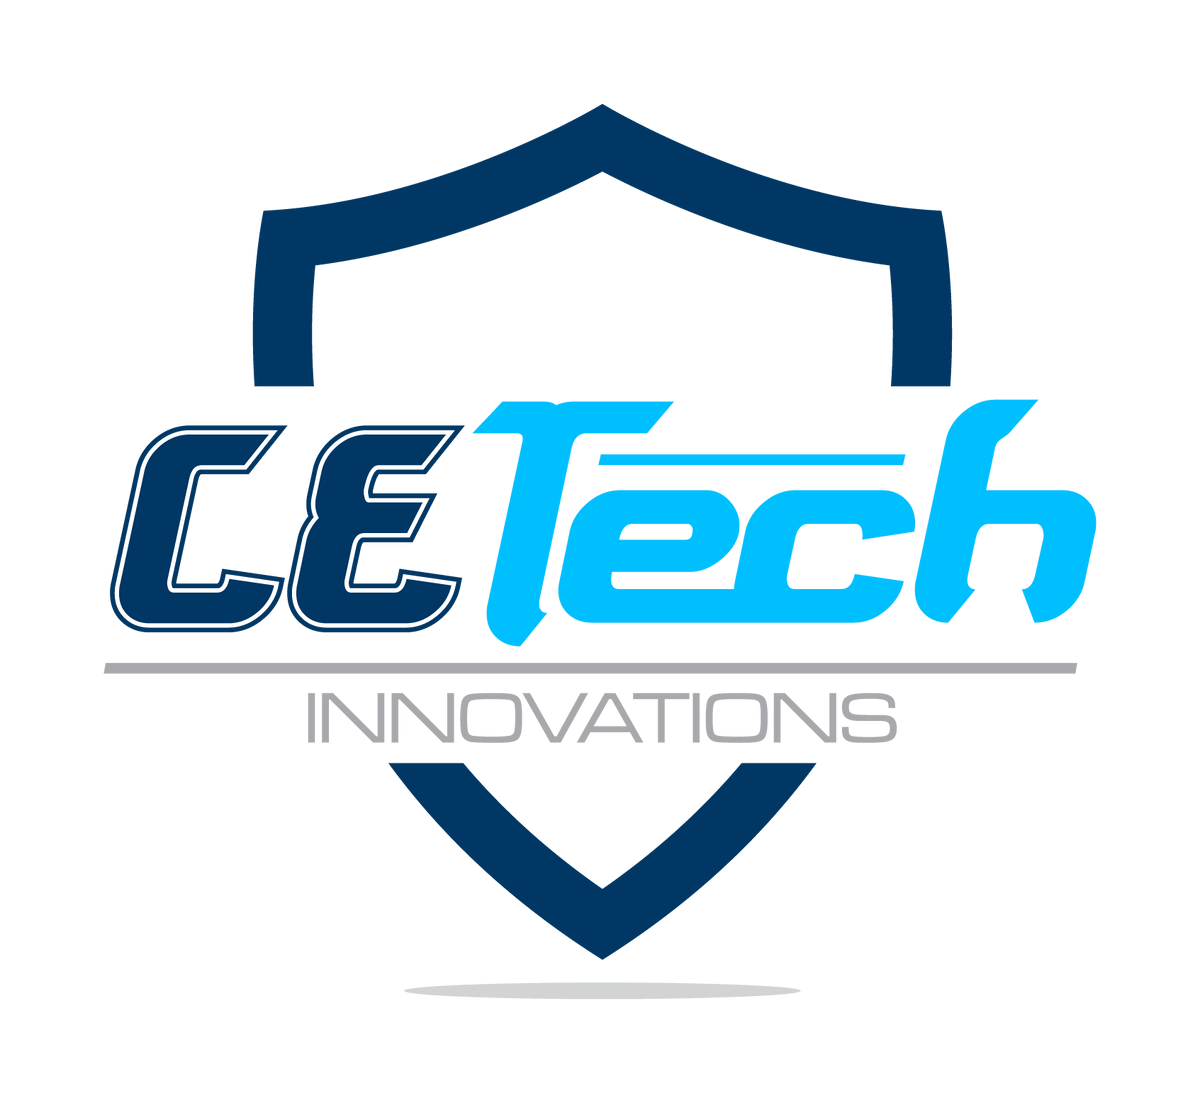 CE Tech Innovations